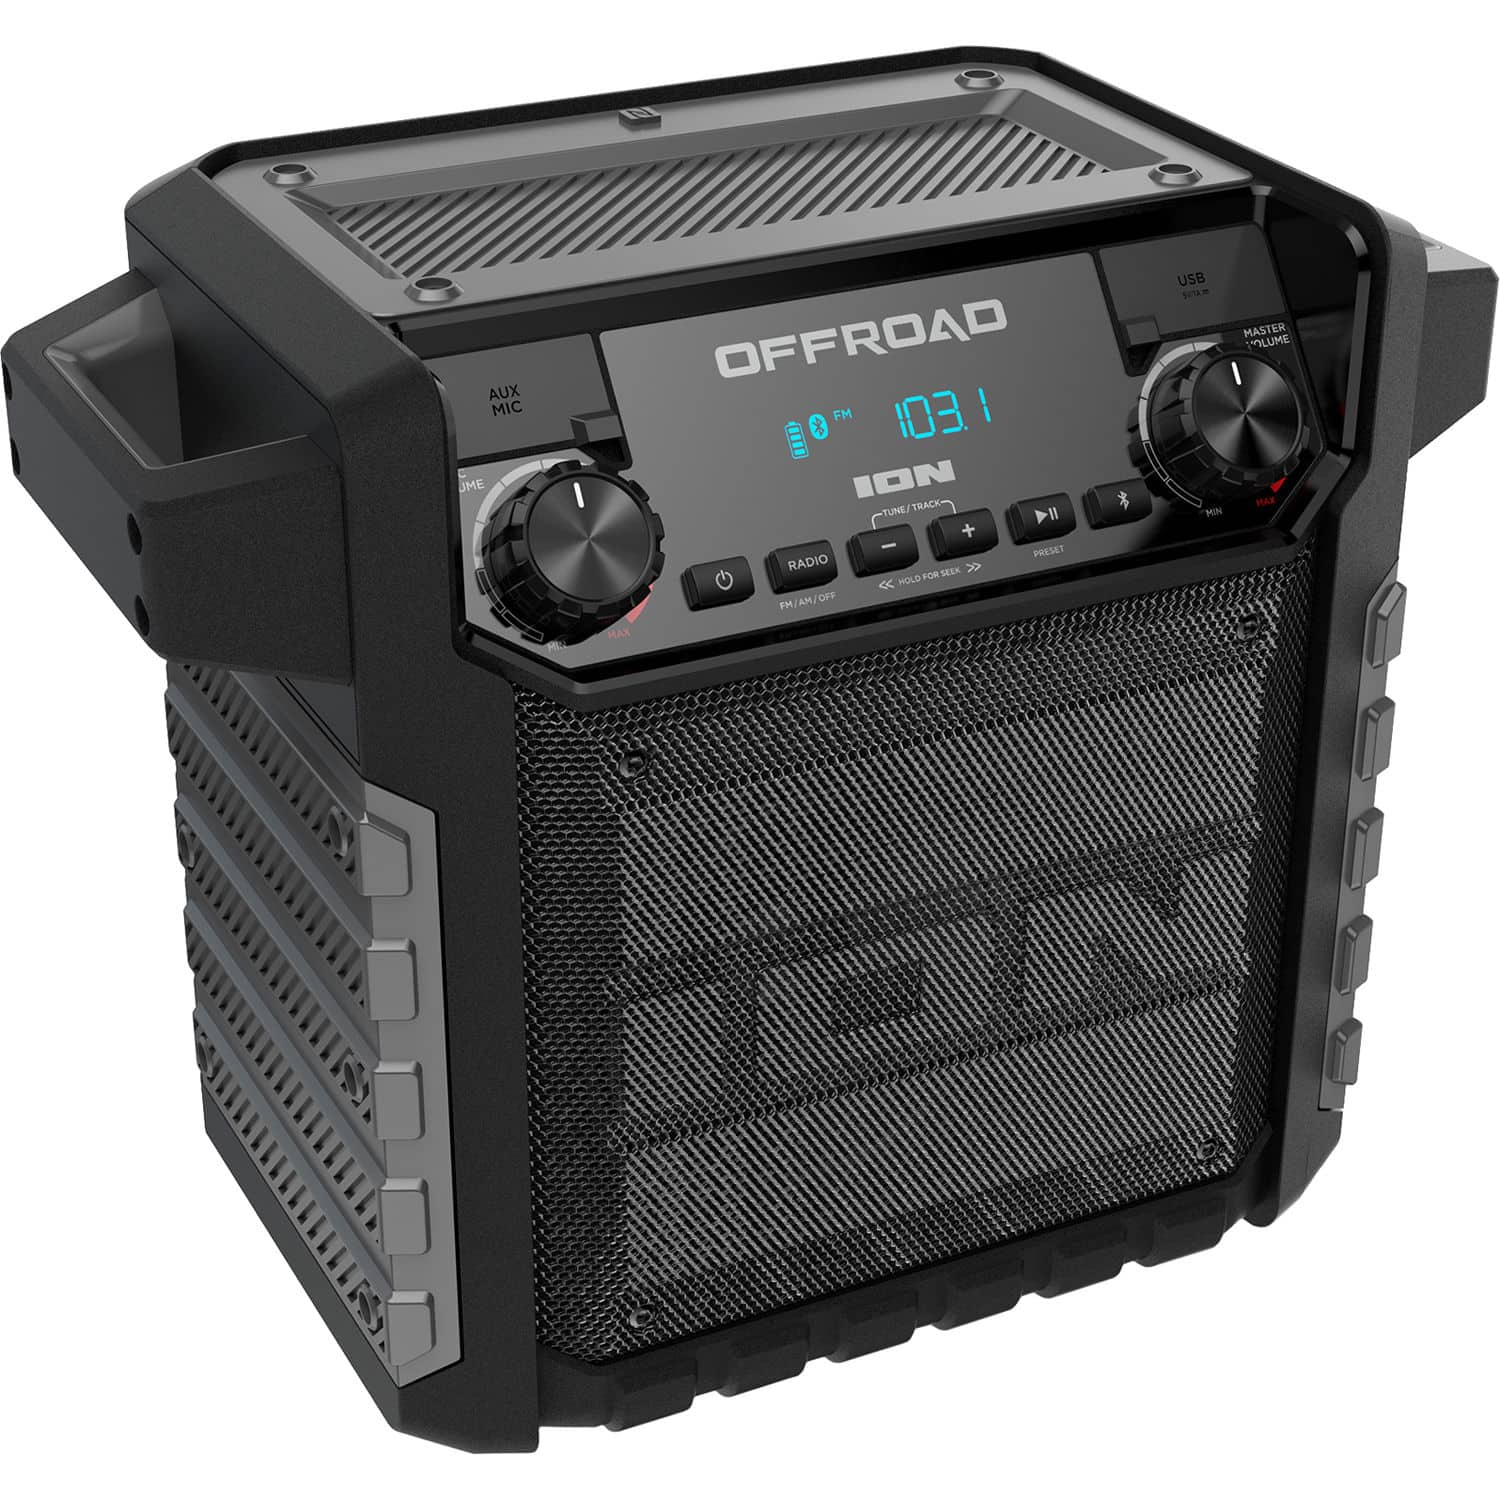 ION Offroad - 50W Water-Resistant Wireless Speaker System @ B&H Photo w/ Free Shipping $119